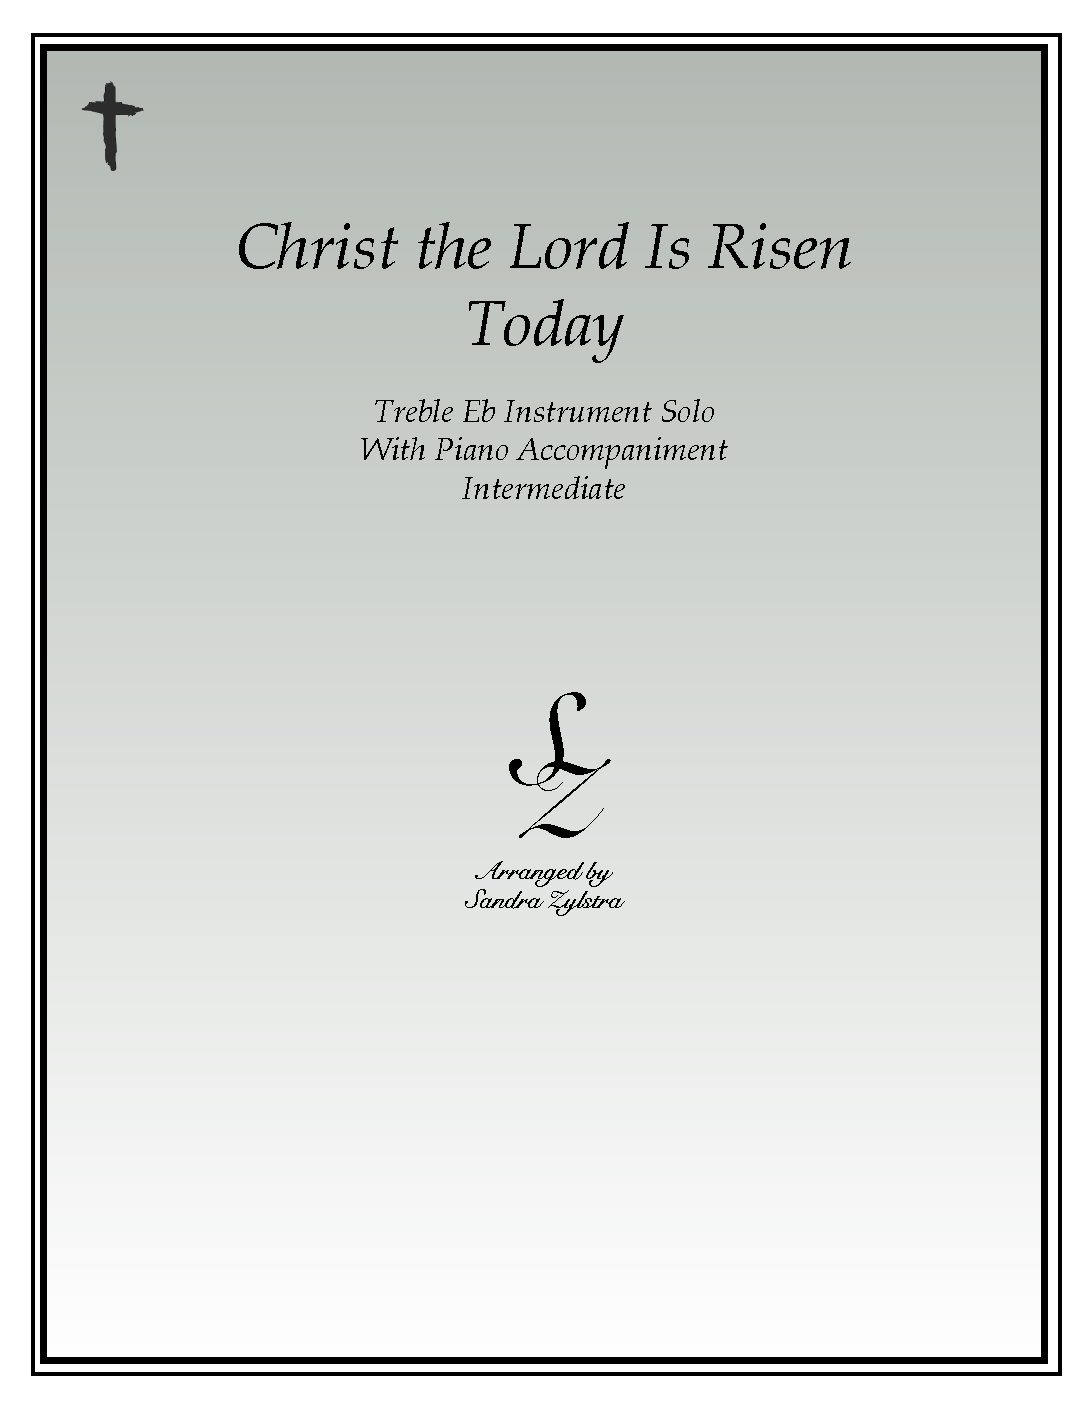 Christ The Lord Is Risen Today -Treble Eb Instrument Solo